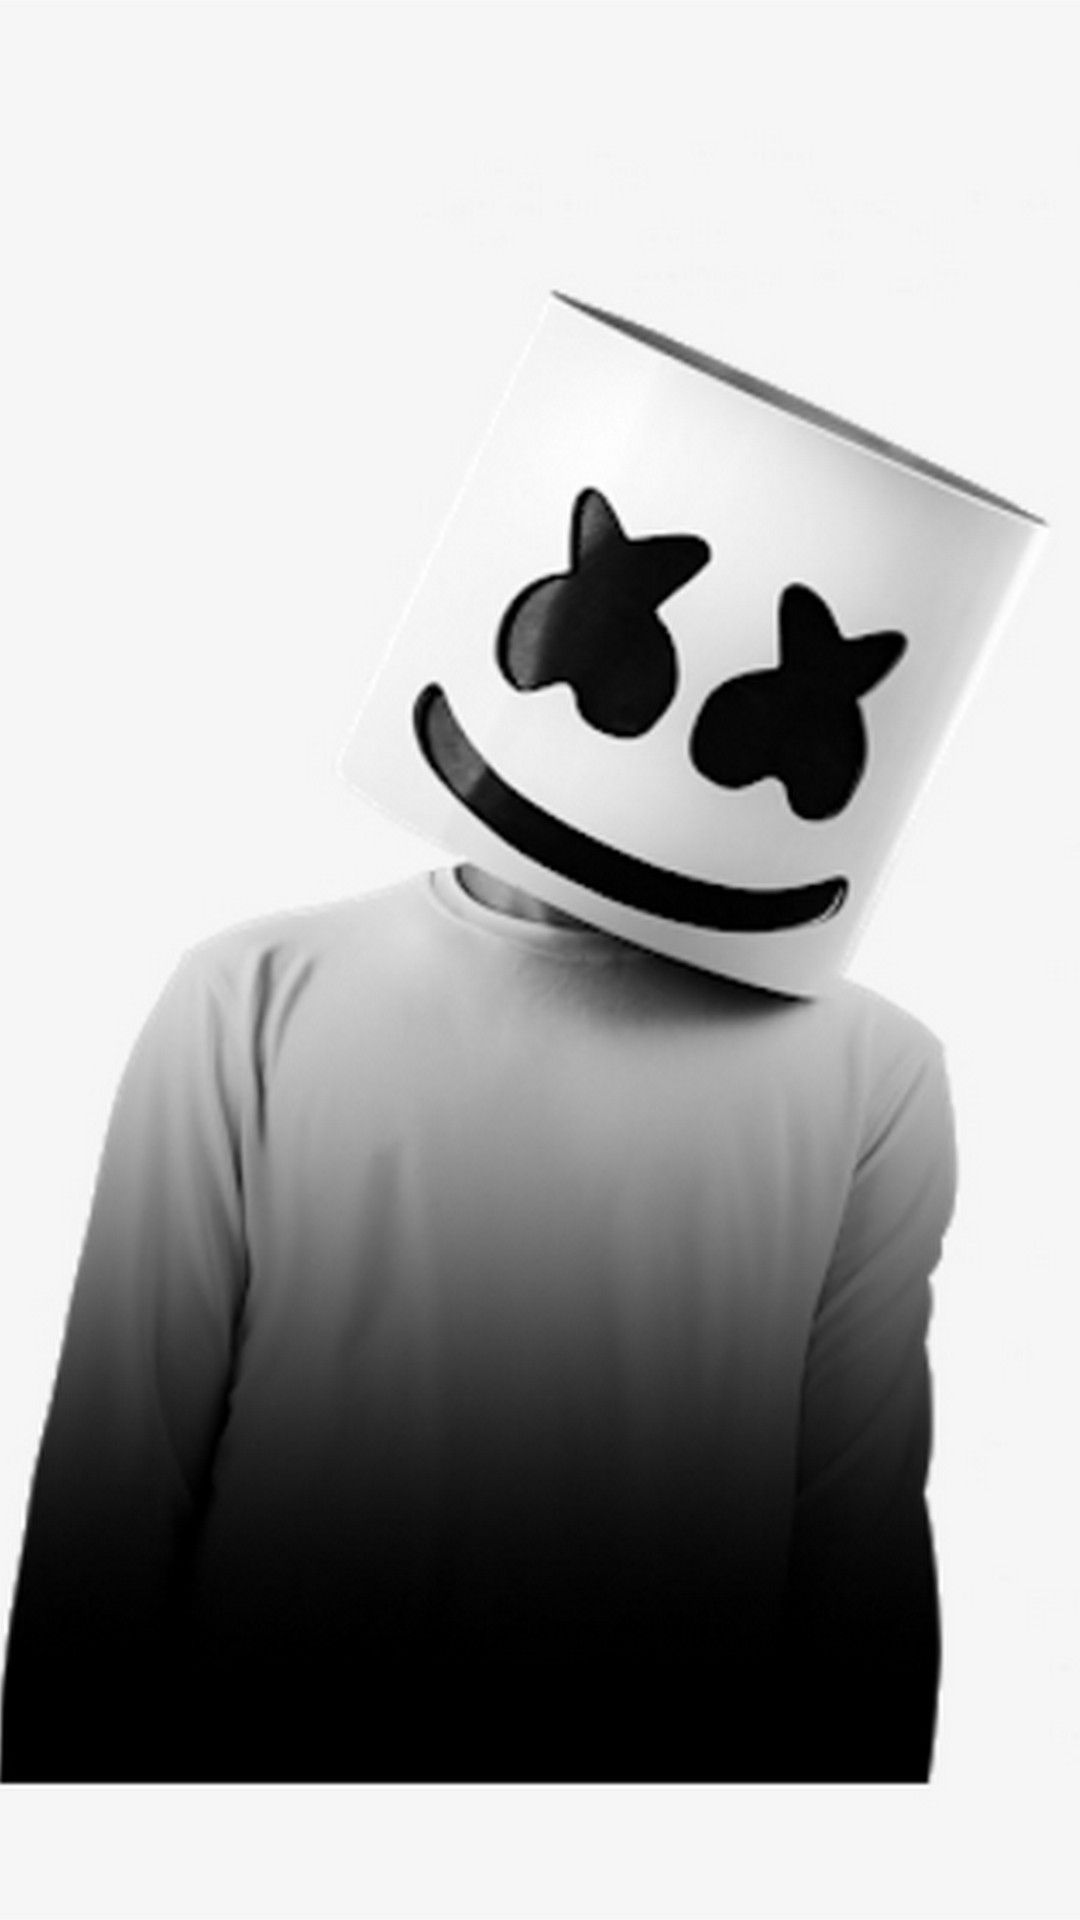 Marshmello Wallpapers And Top Mix Iphone 6 Wallpaper Iphone Wallpaper Images Best Iphone Wallpapers